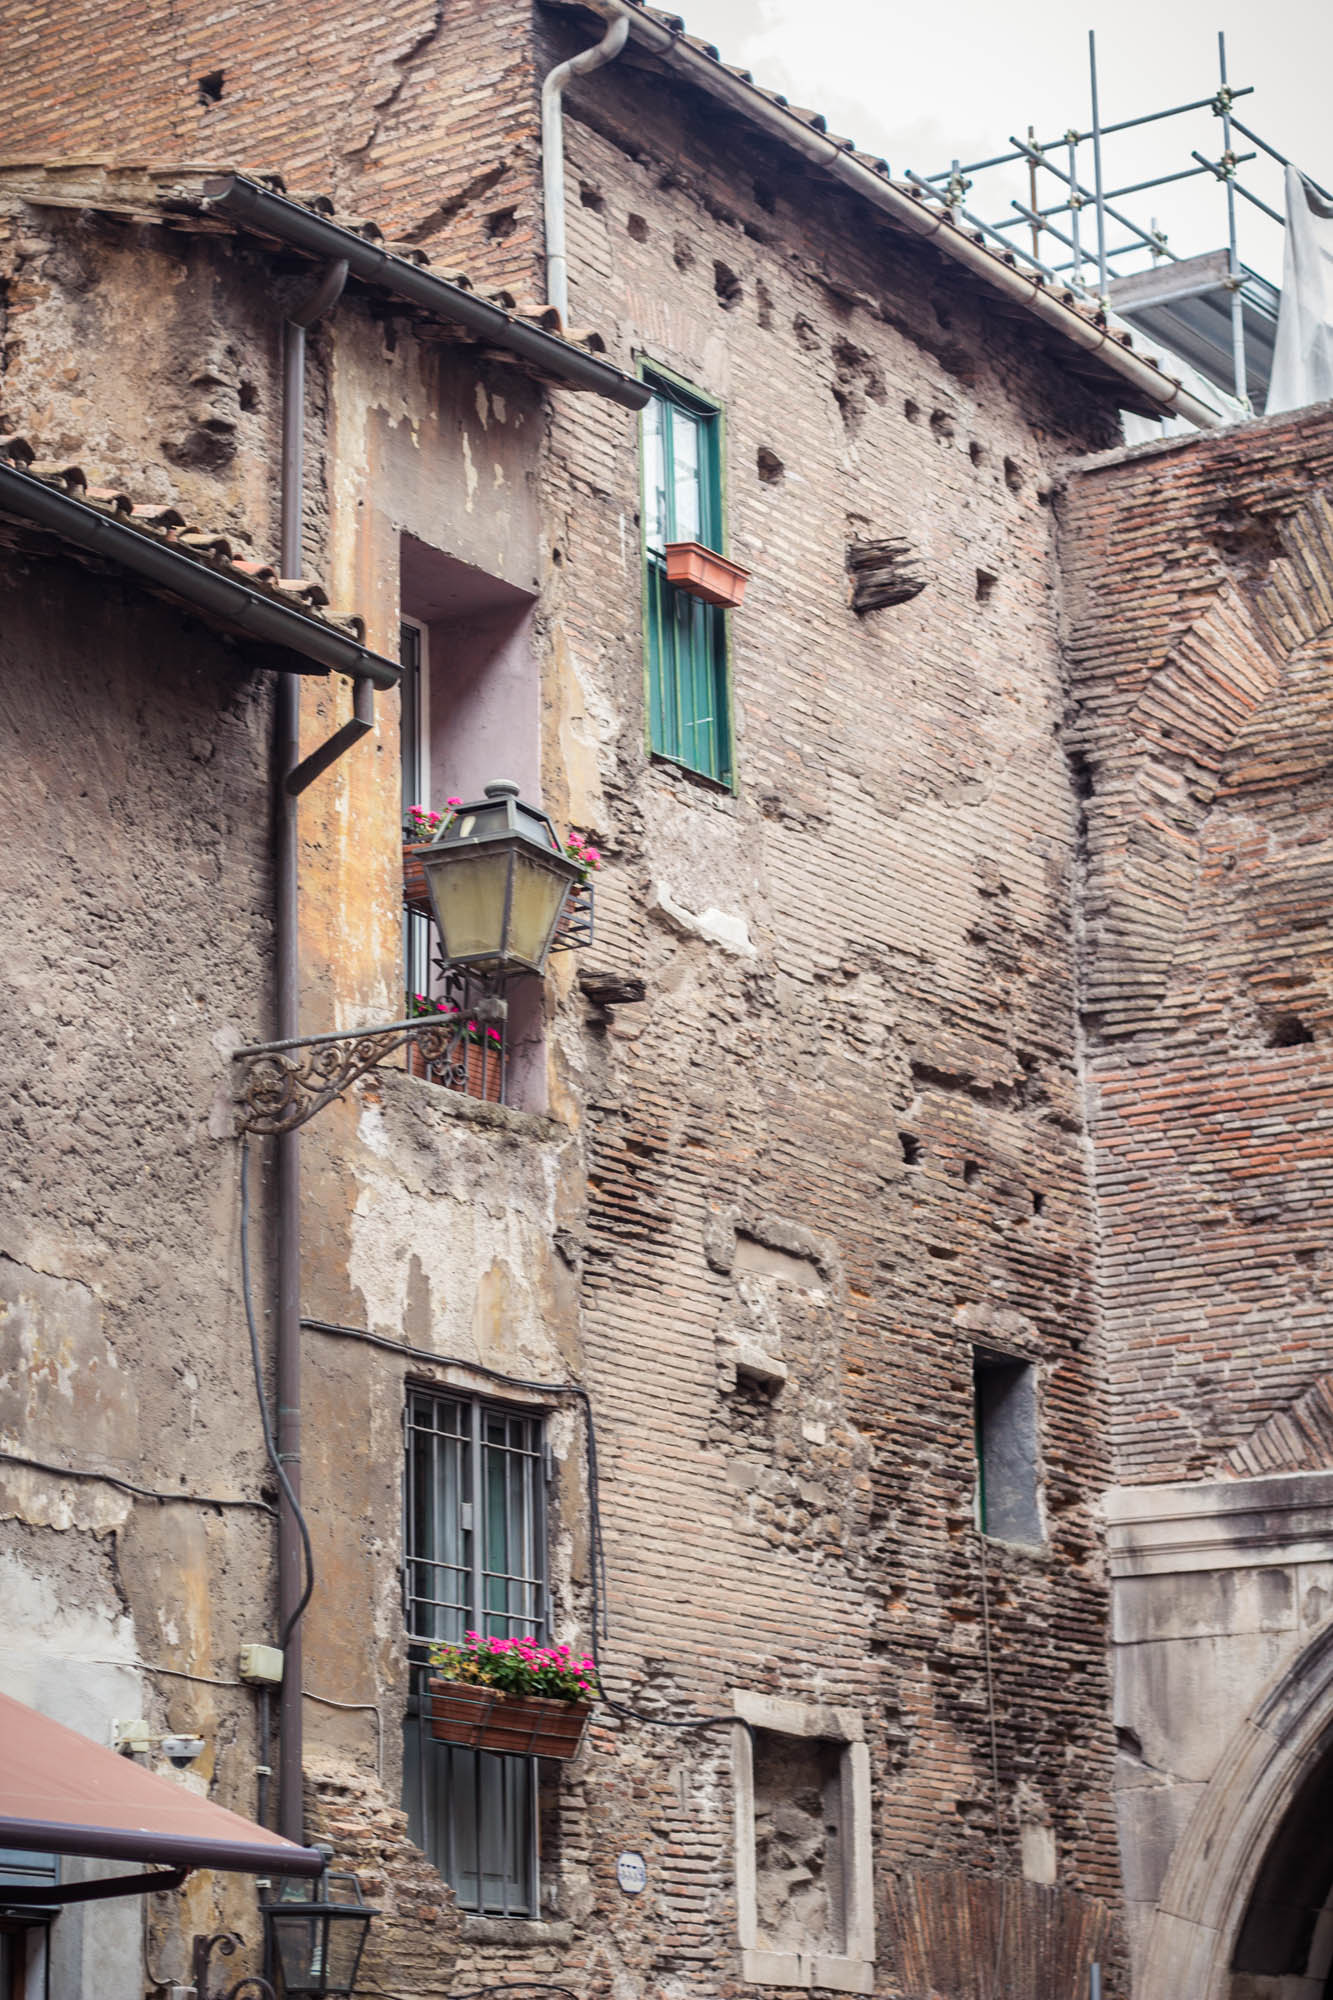 Jewish Ghetto in Rome, Italy